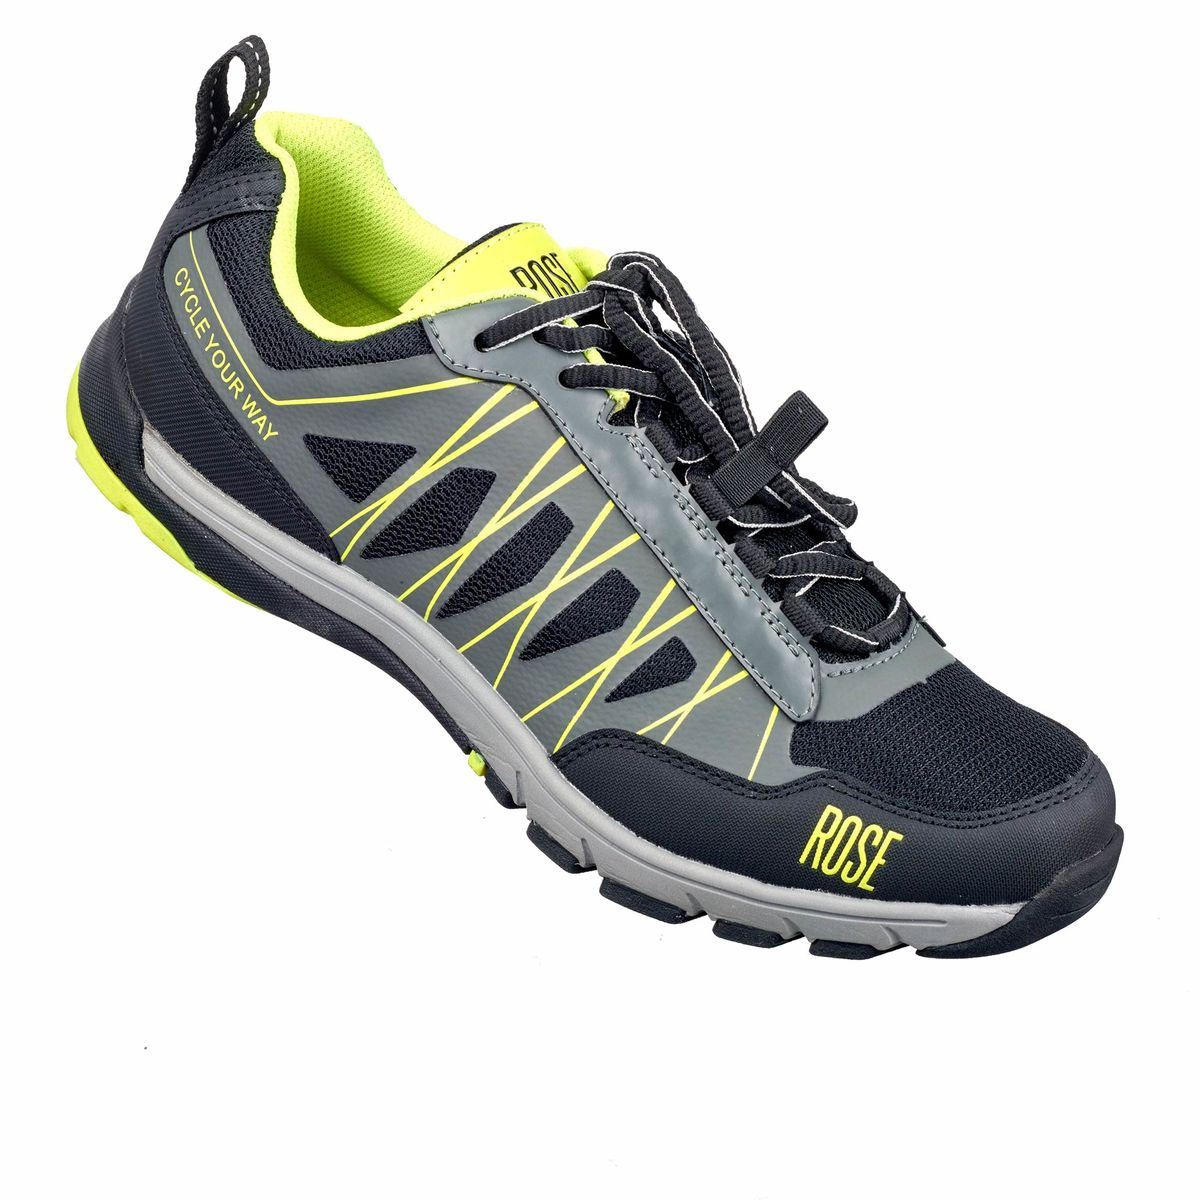 RTS 07 MTB/touring shoes